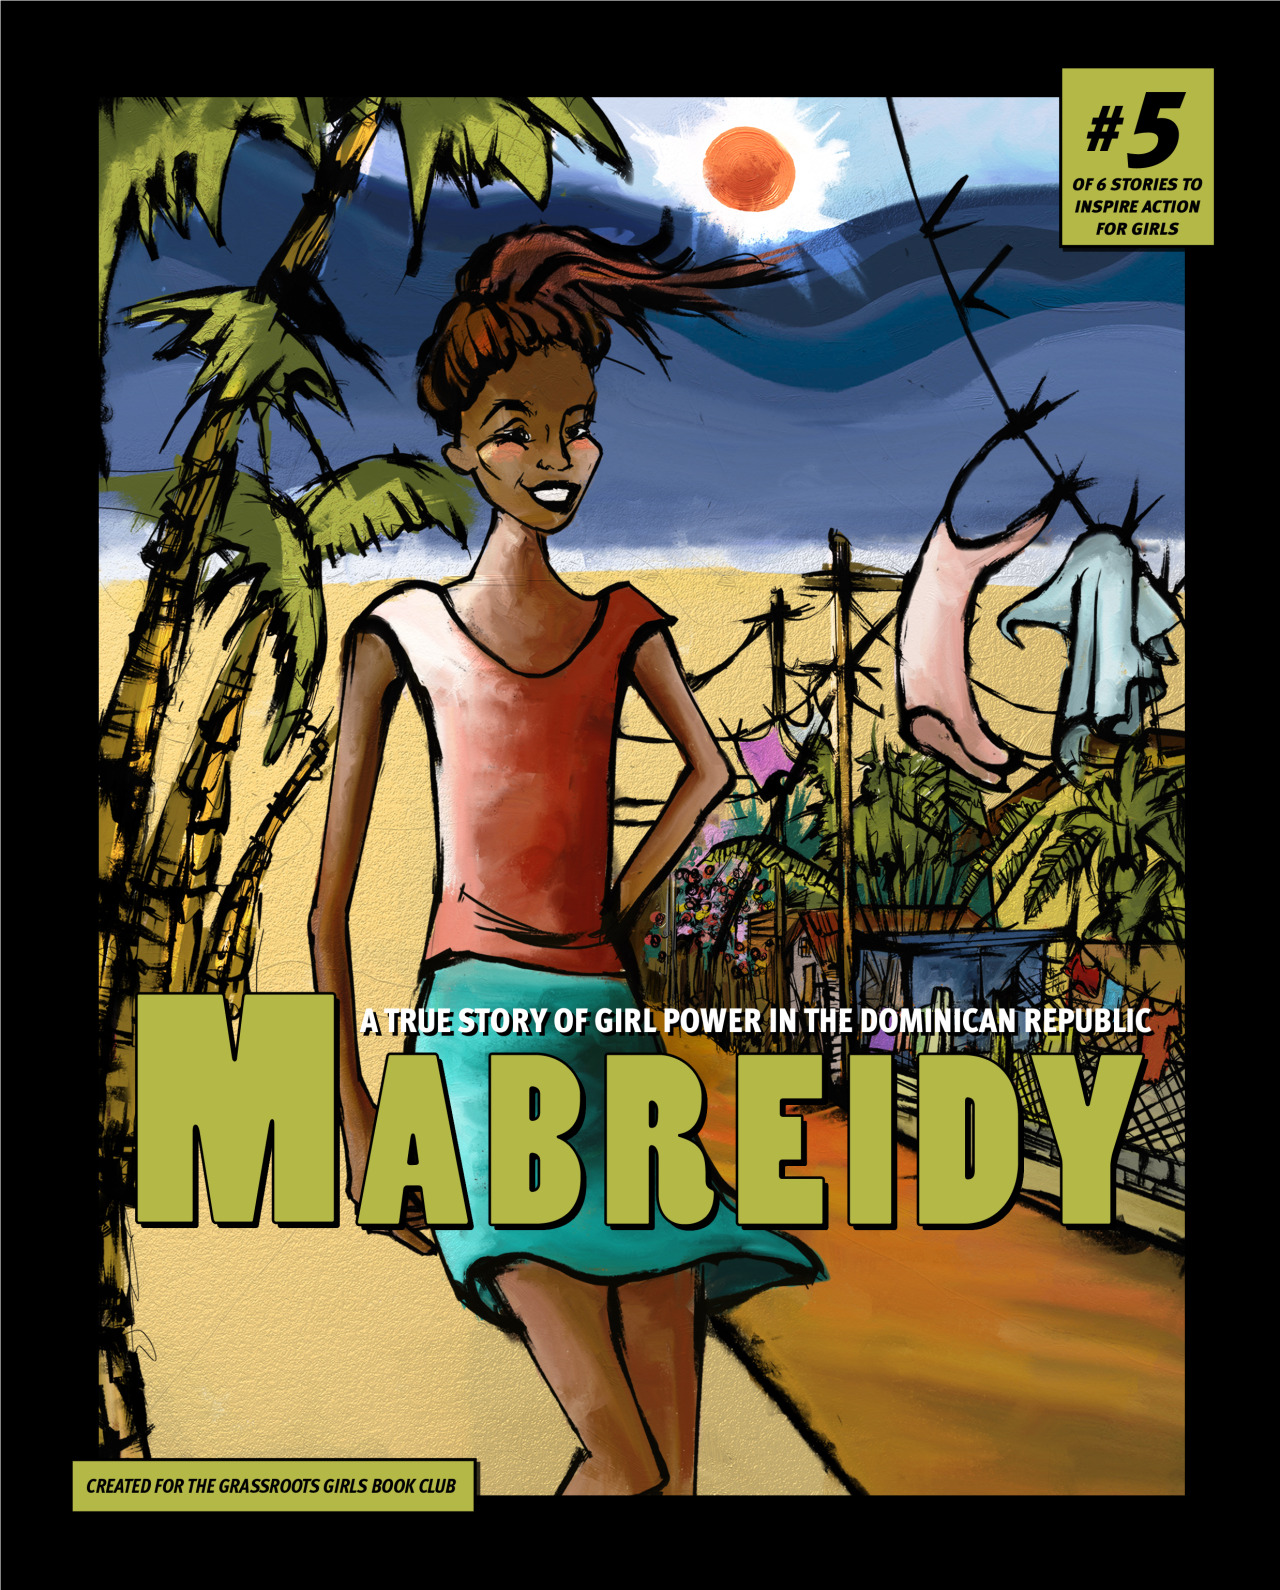 graphic novel cover with girl from Dominican Republic